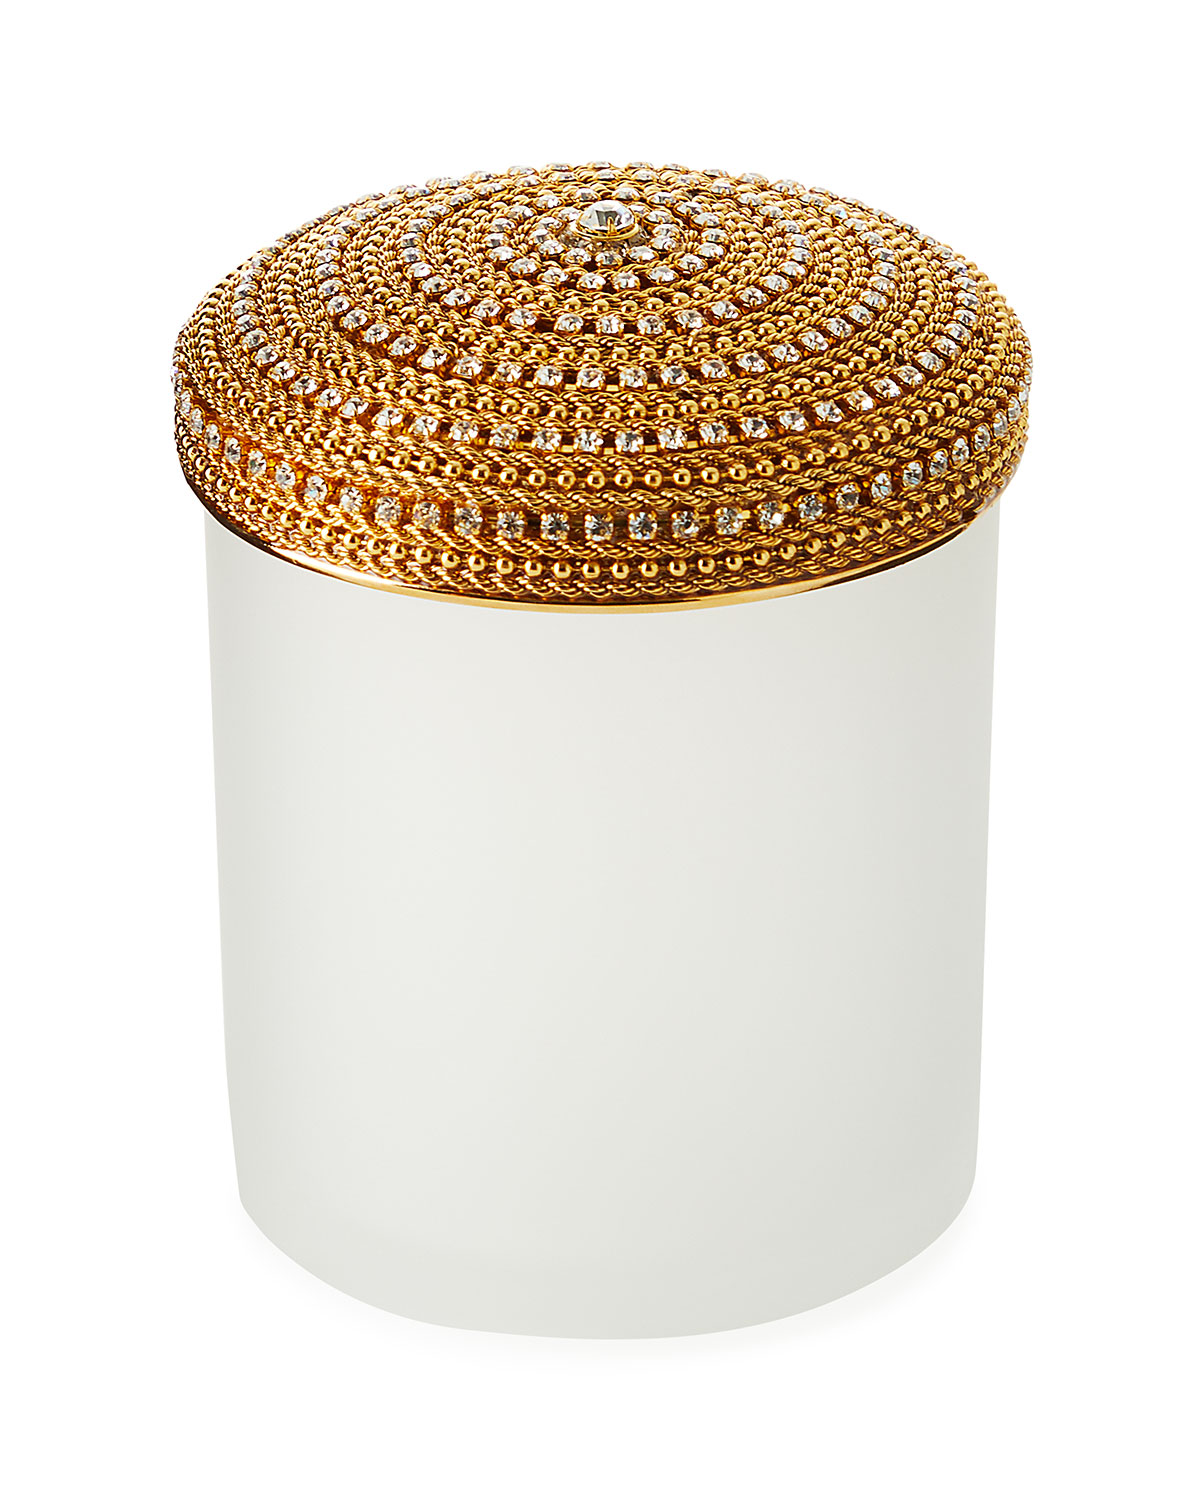 Mike & Ally ARCHIE SOLID CHAIN ROUND COTTON SWAB CANISTER